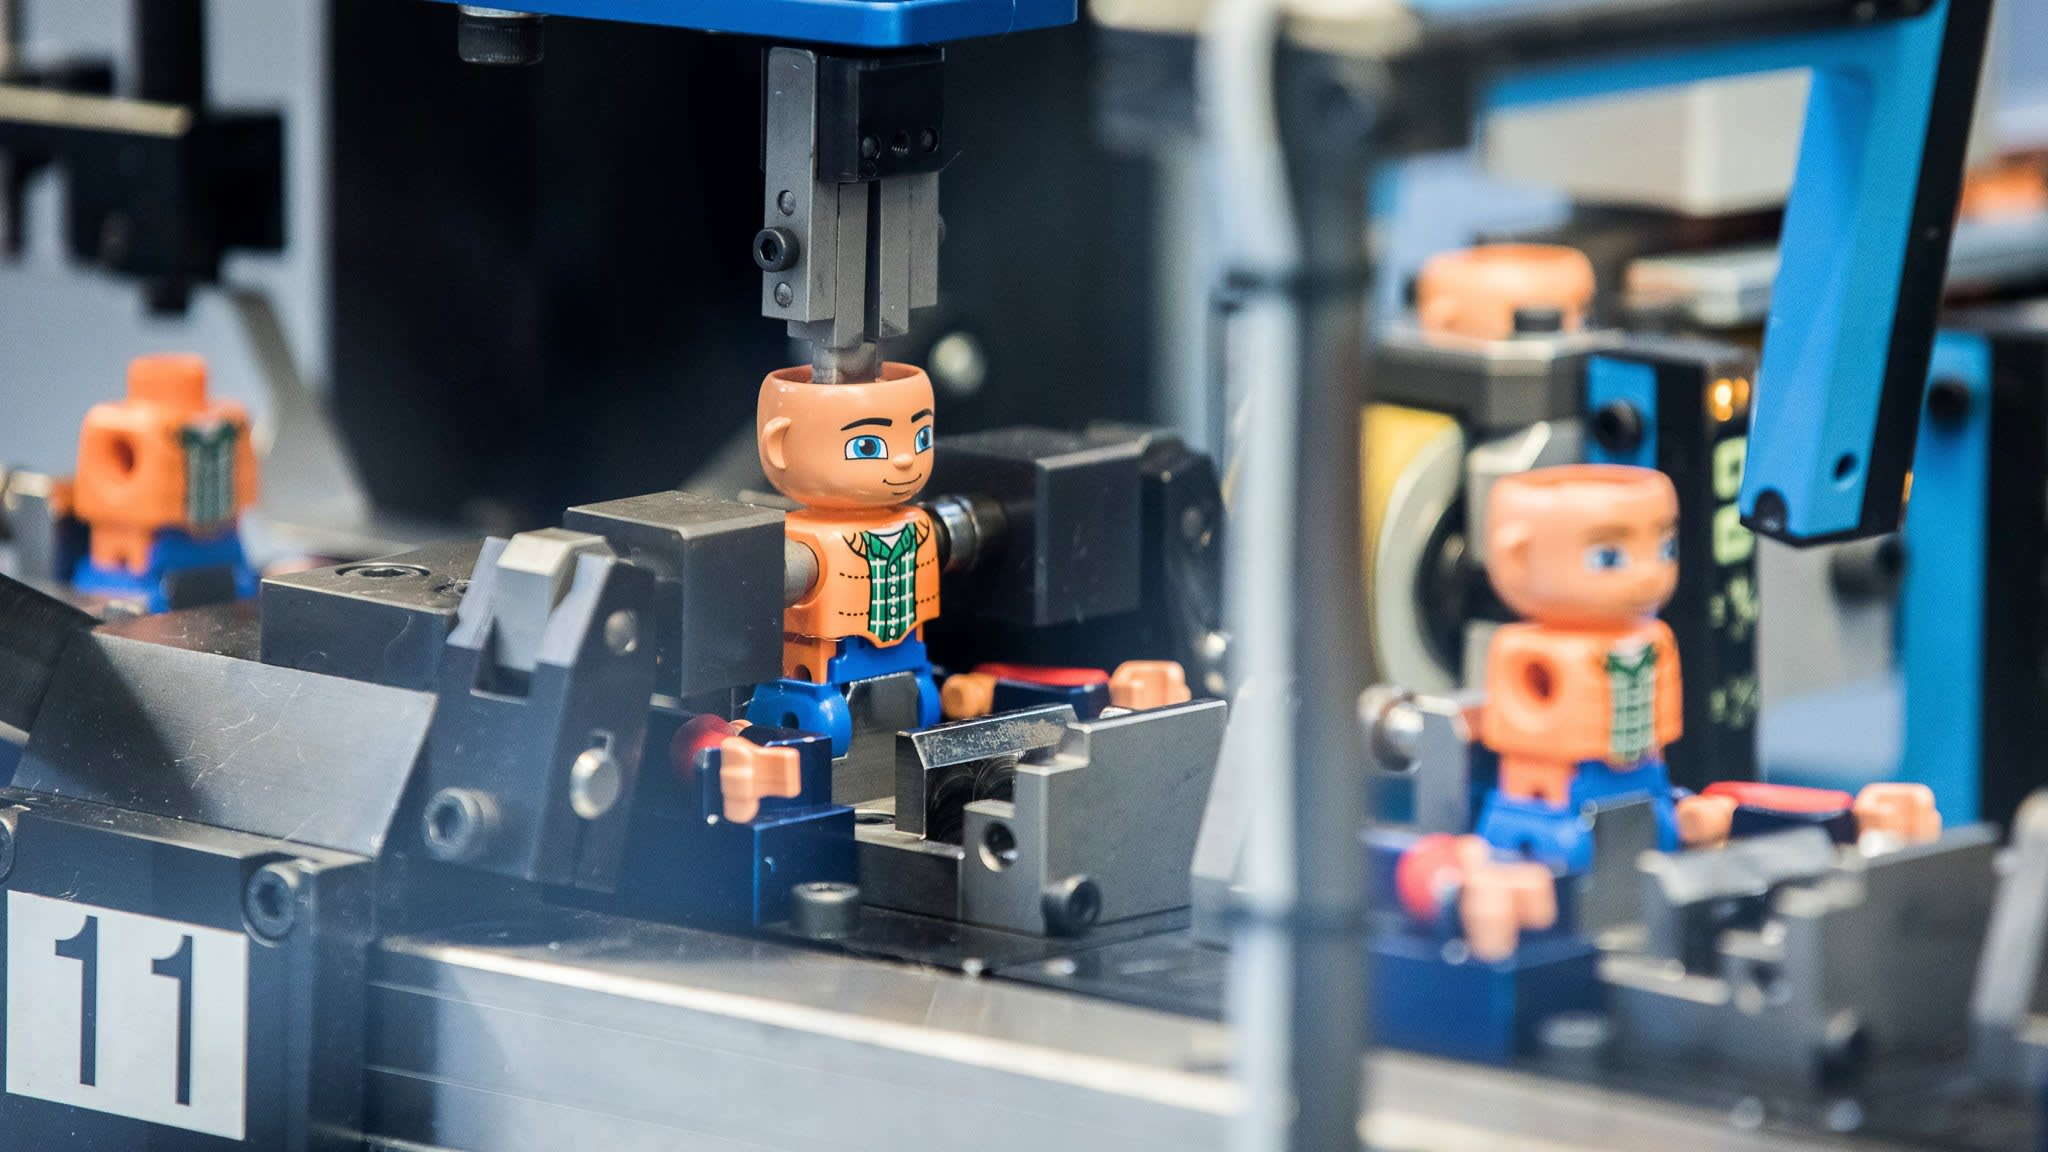 Lego builds green credentials with switch to sustainable plastics